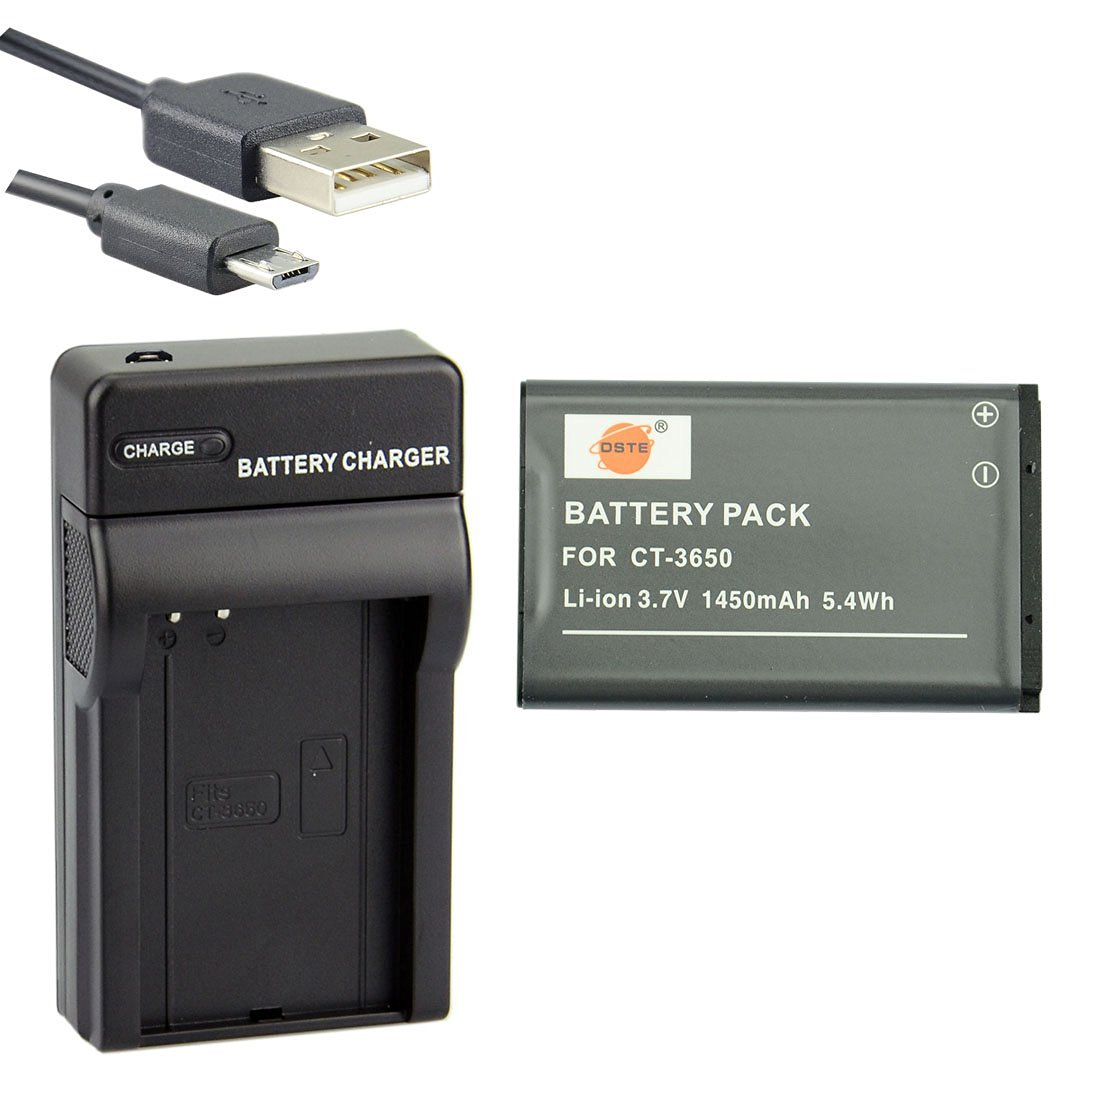 DSTE CT-3650 Li-ion Battery and Micro USB Charger Suit for Contour GPS HD 1080P